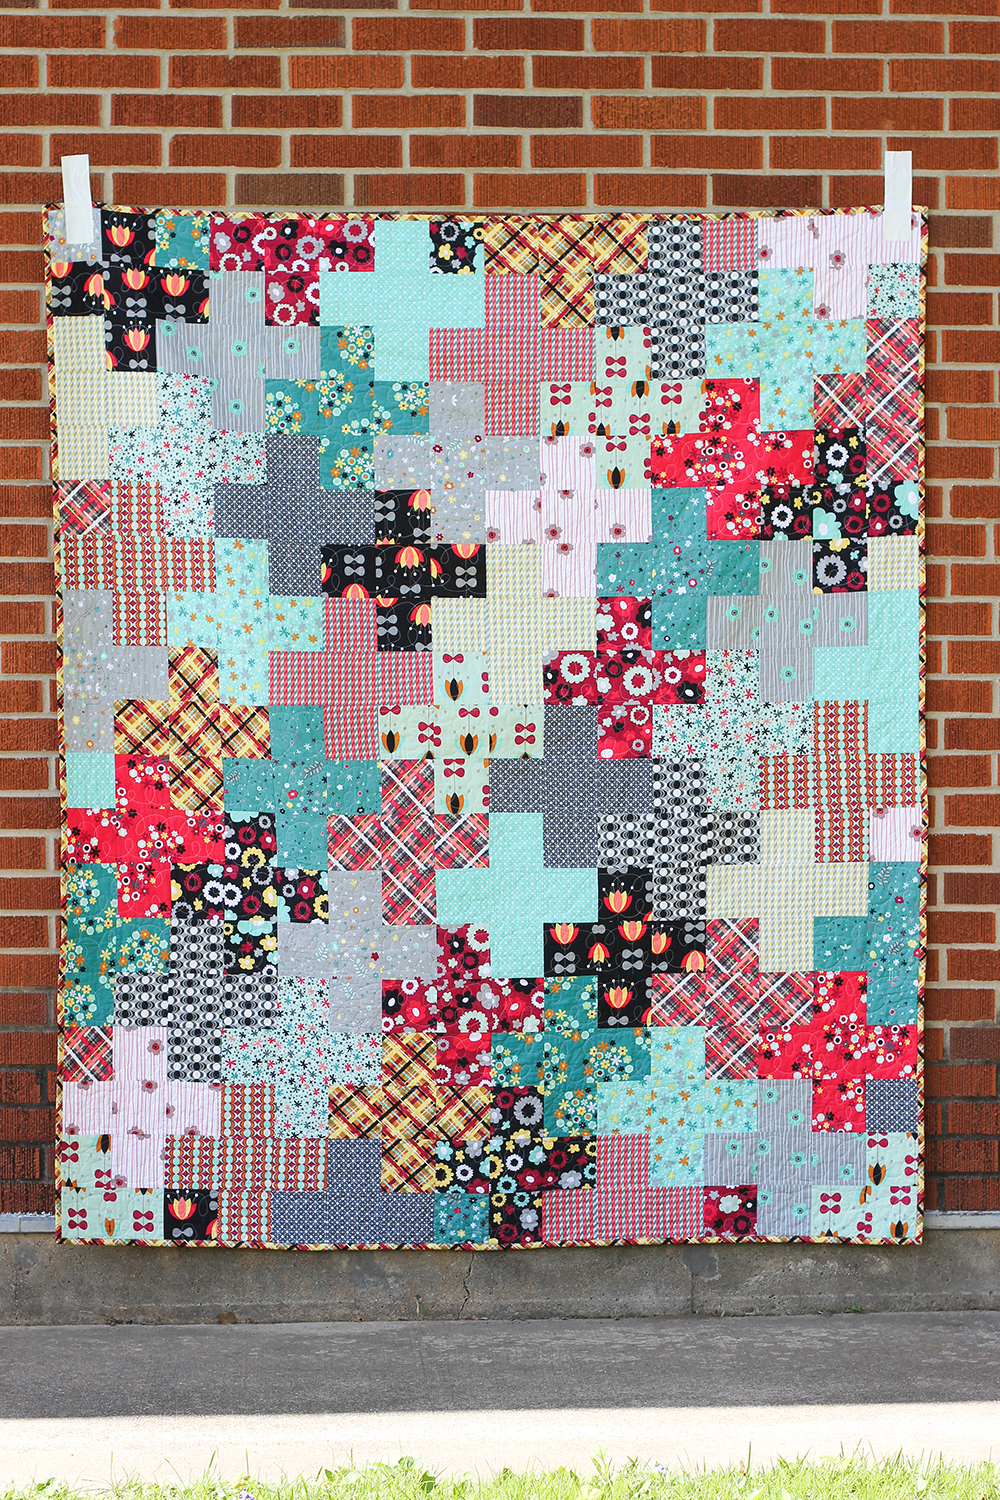 http://www.jenibakerpatterns.com/product/simple-addition-quilt-pdf-pattern